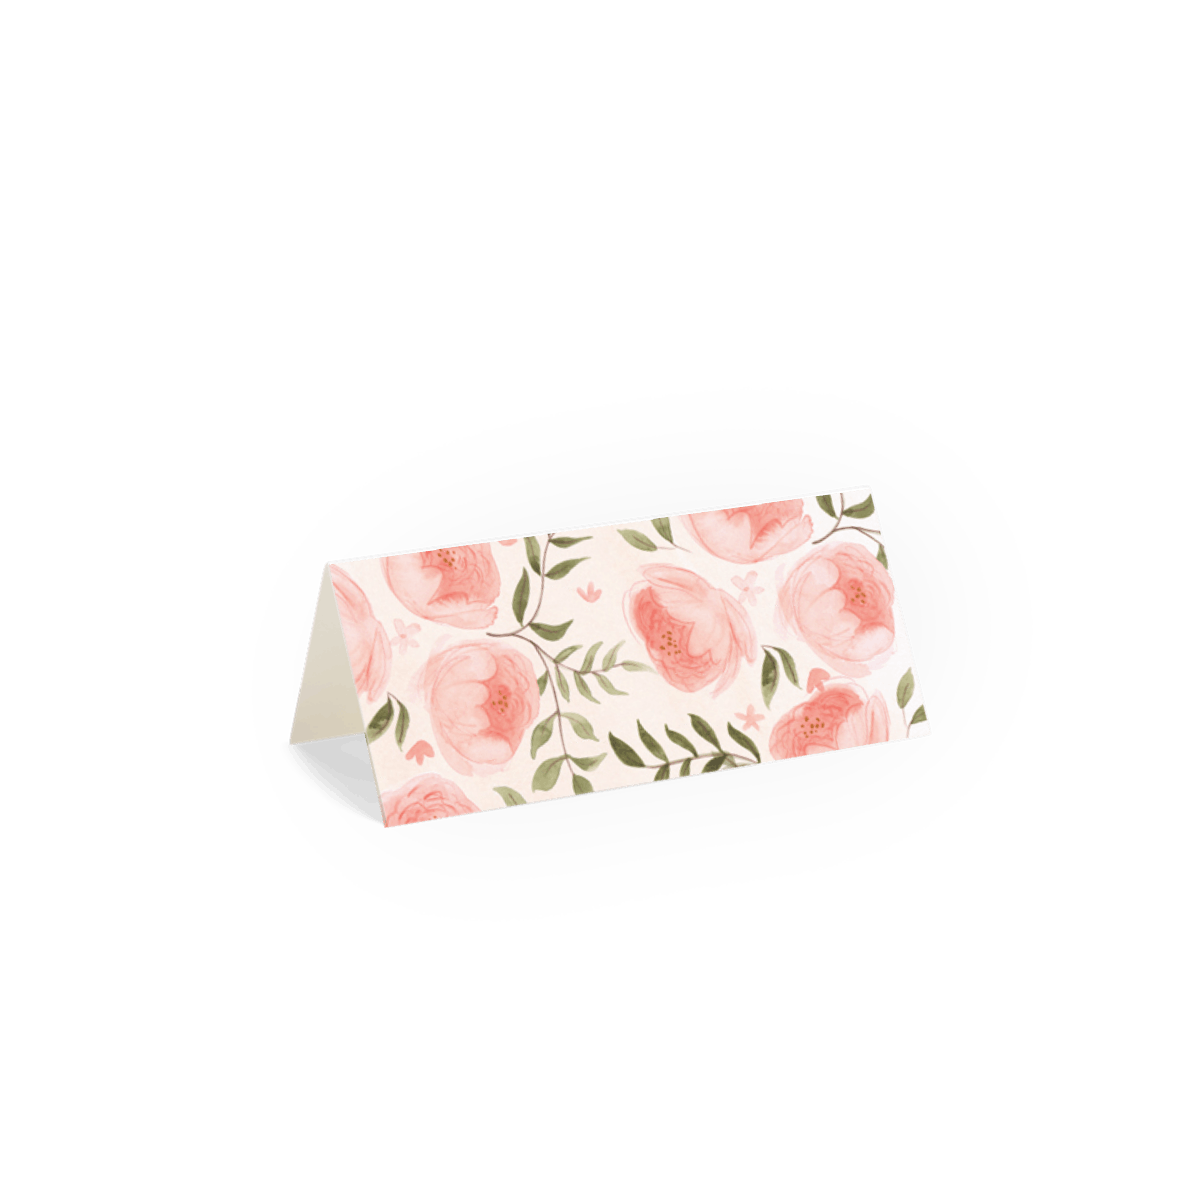 Https%3a%2f%2fwww.papier.com%2fproduct image%2f20497%2f15%2fblooming peonies 5243 back 1489061353.png?ixlib=rb 1.1